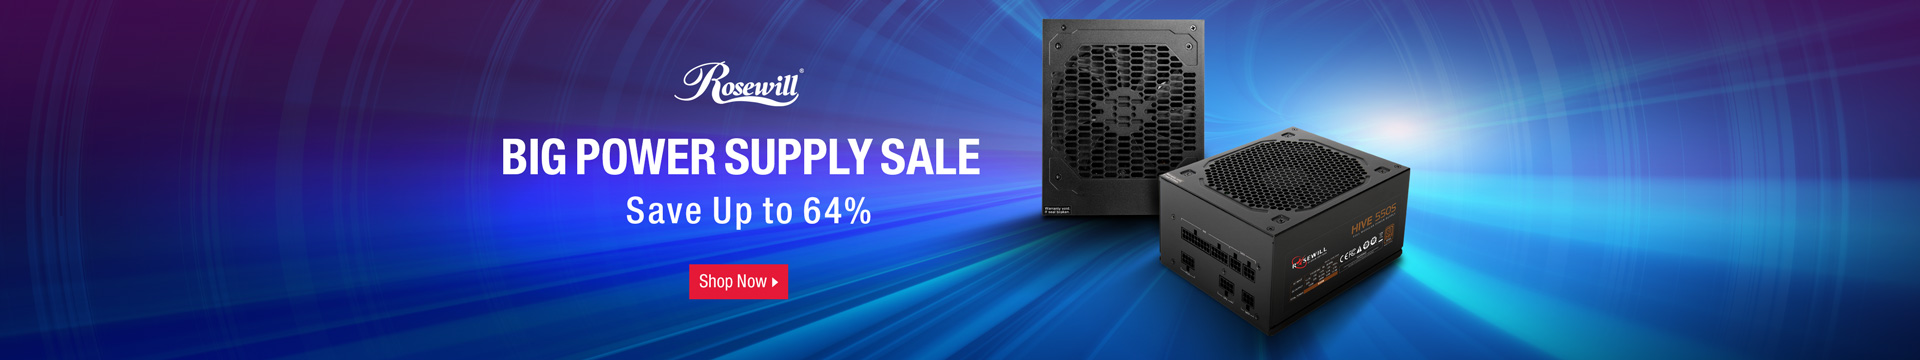 Big power supply sale